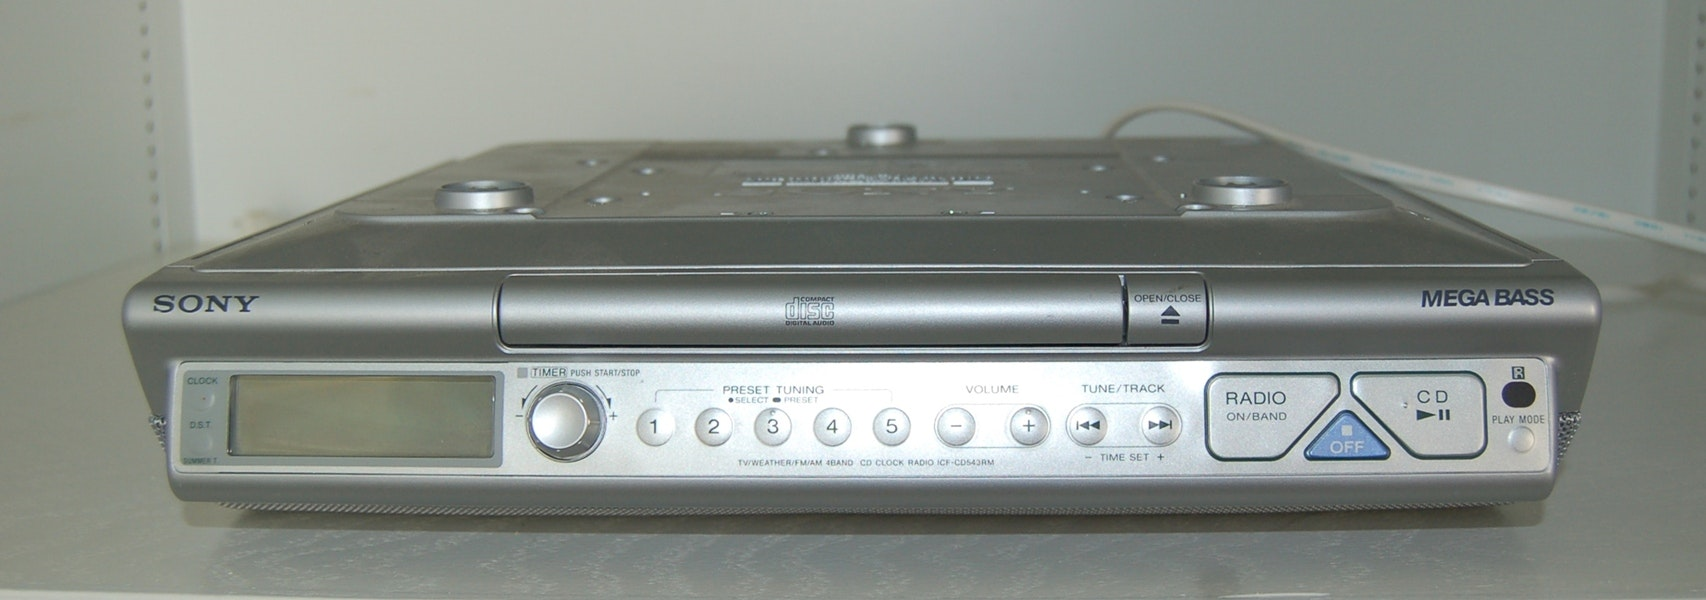 sony cabinet mount cd player ebth